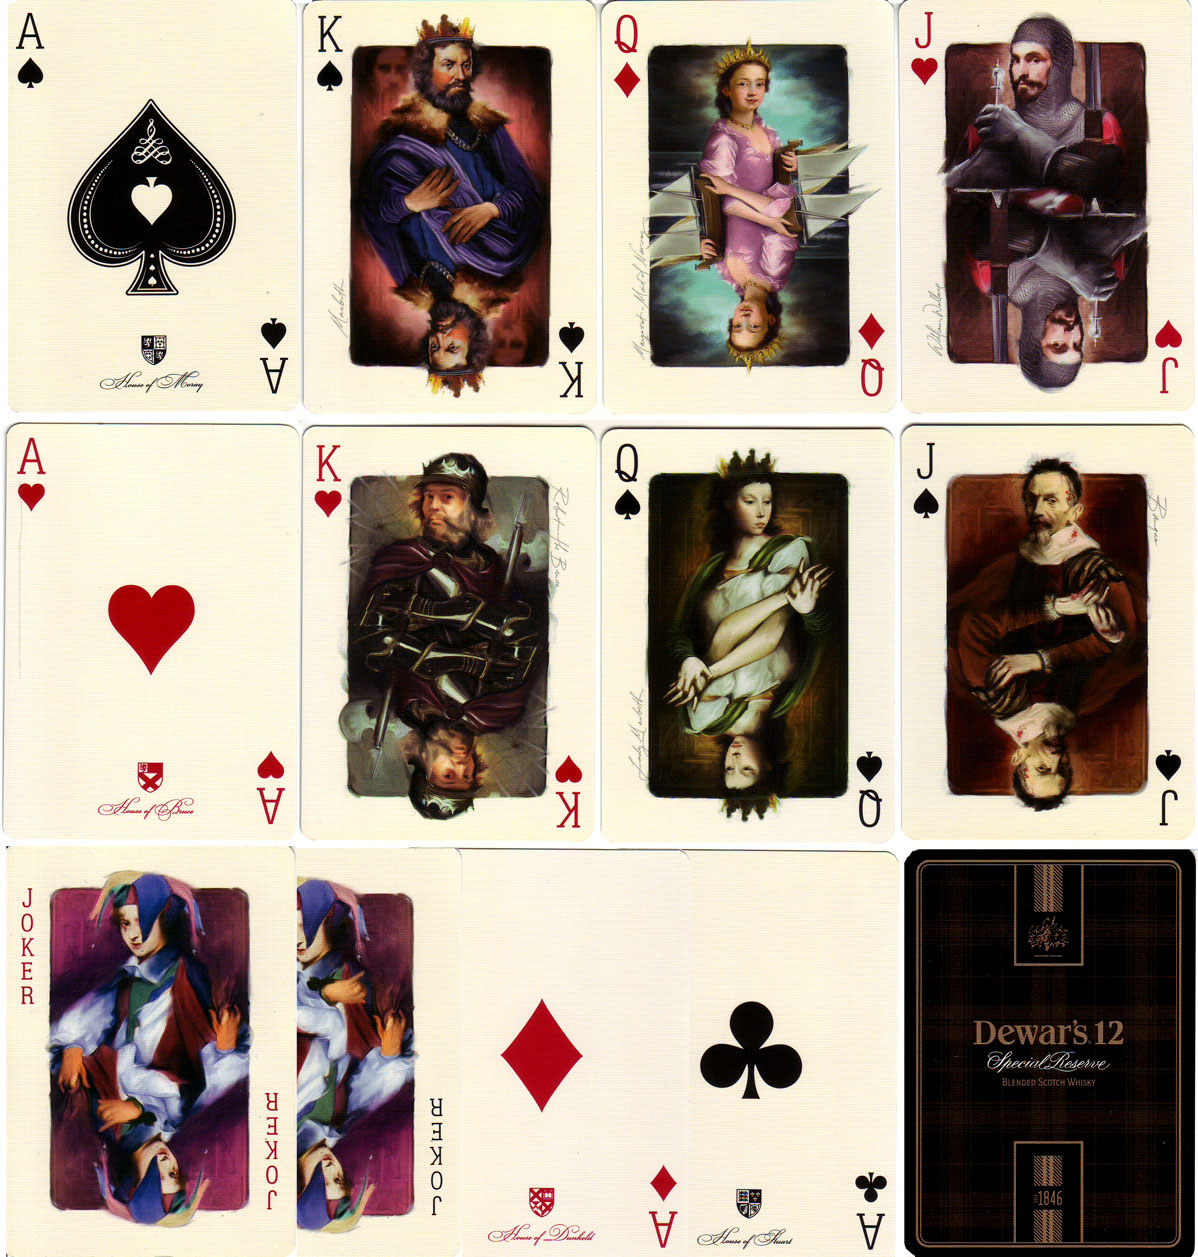 playing cards for Dewar's by SNP Ausprint Pty Ltd